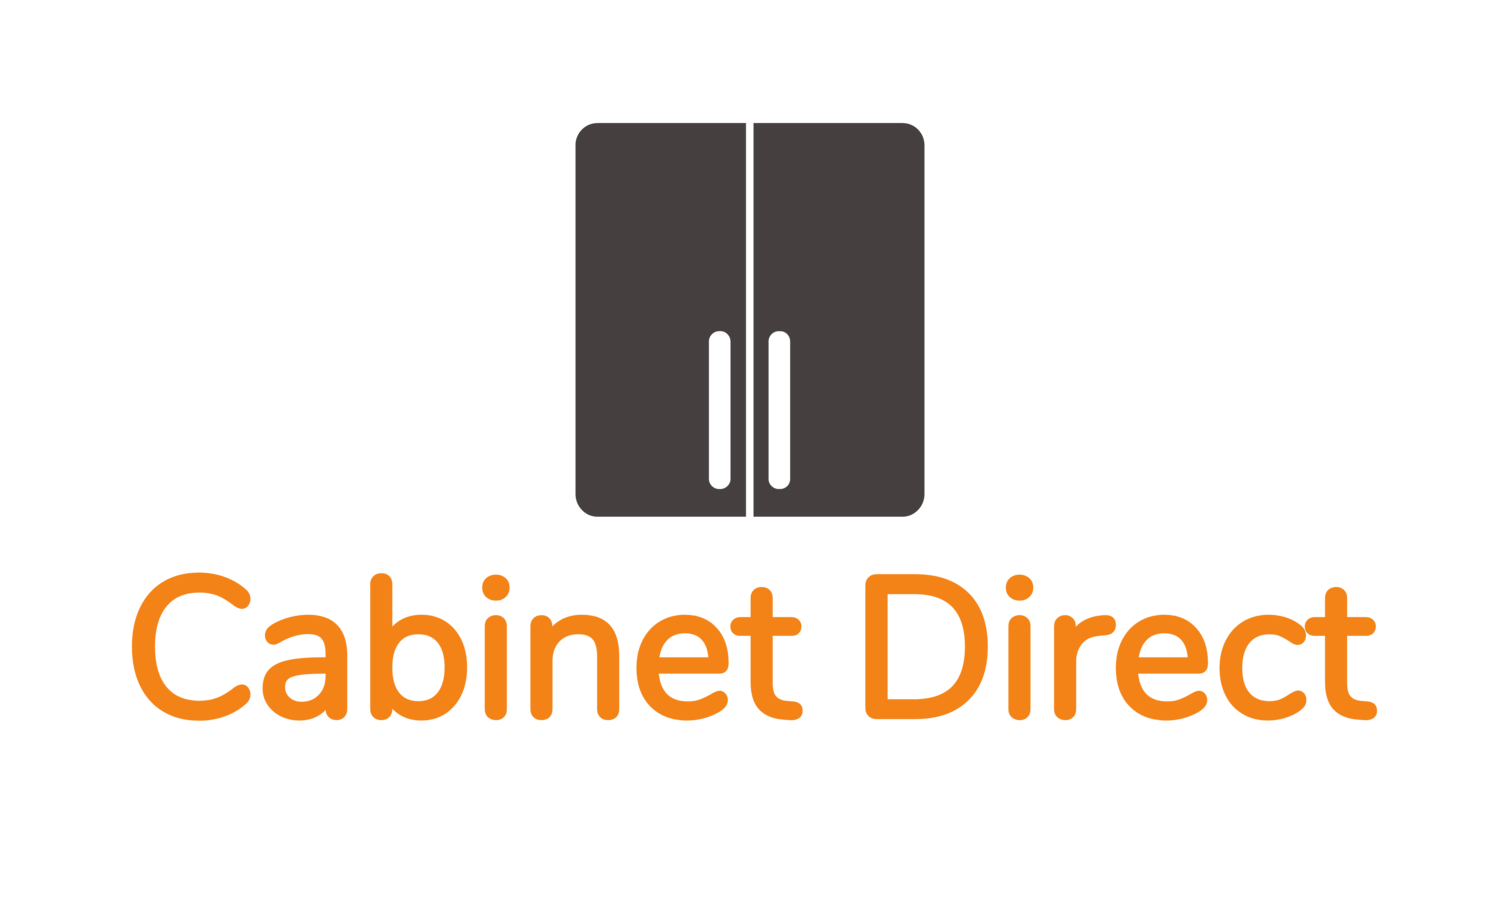 Cabinet Direct